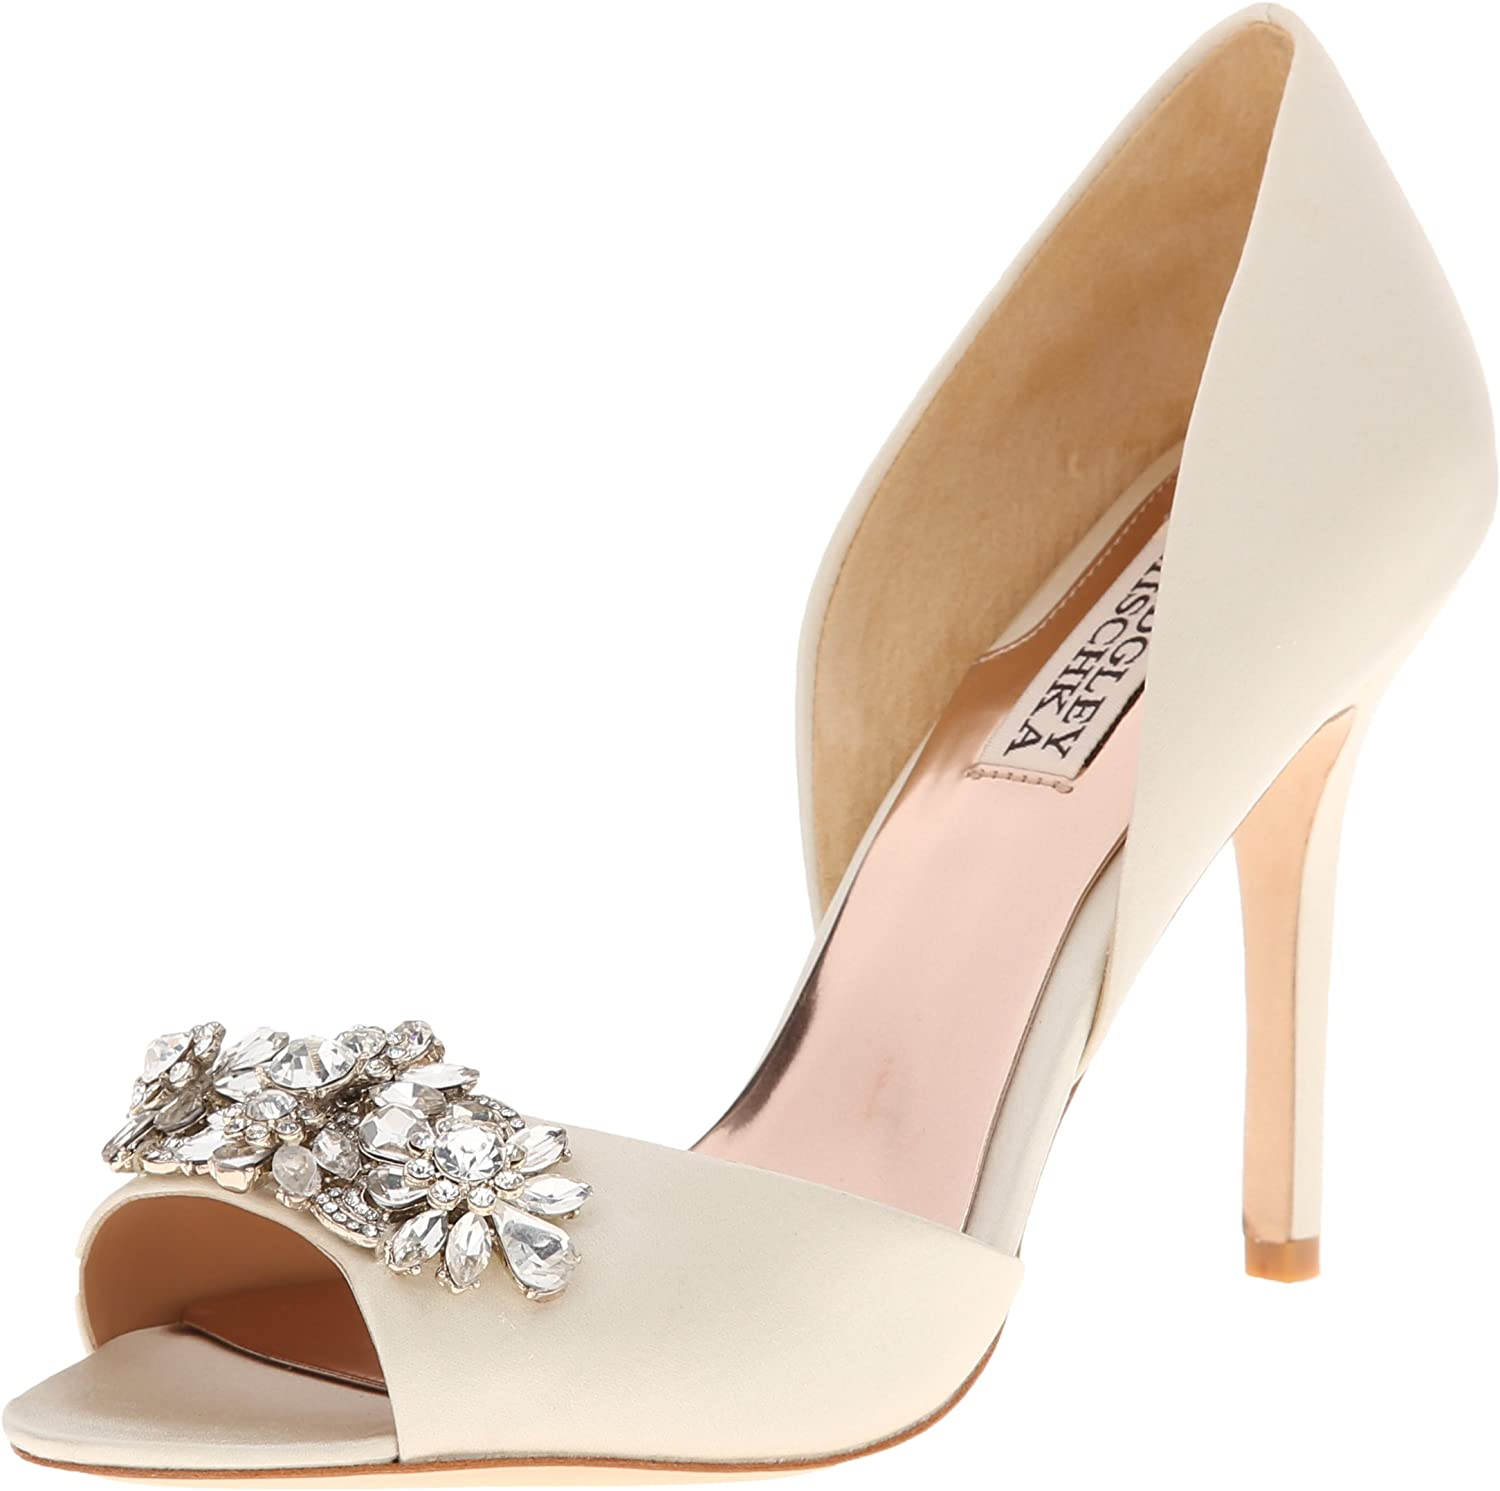 Badgley Mischka Womens Giana DOrsay Pump